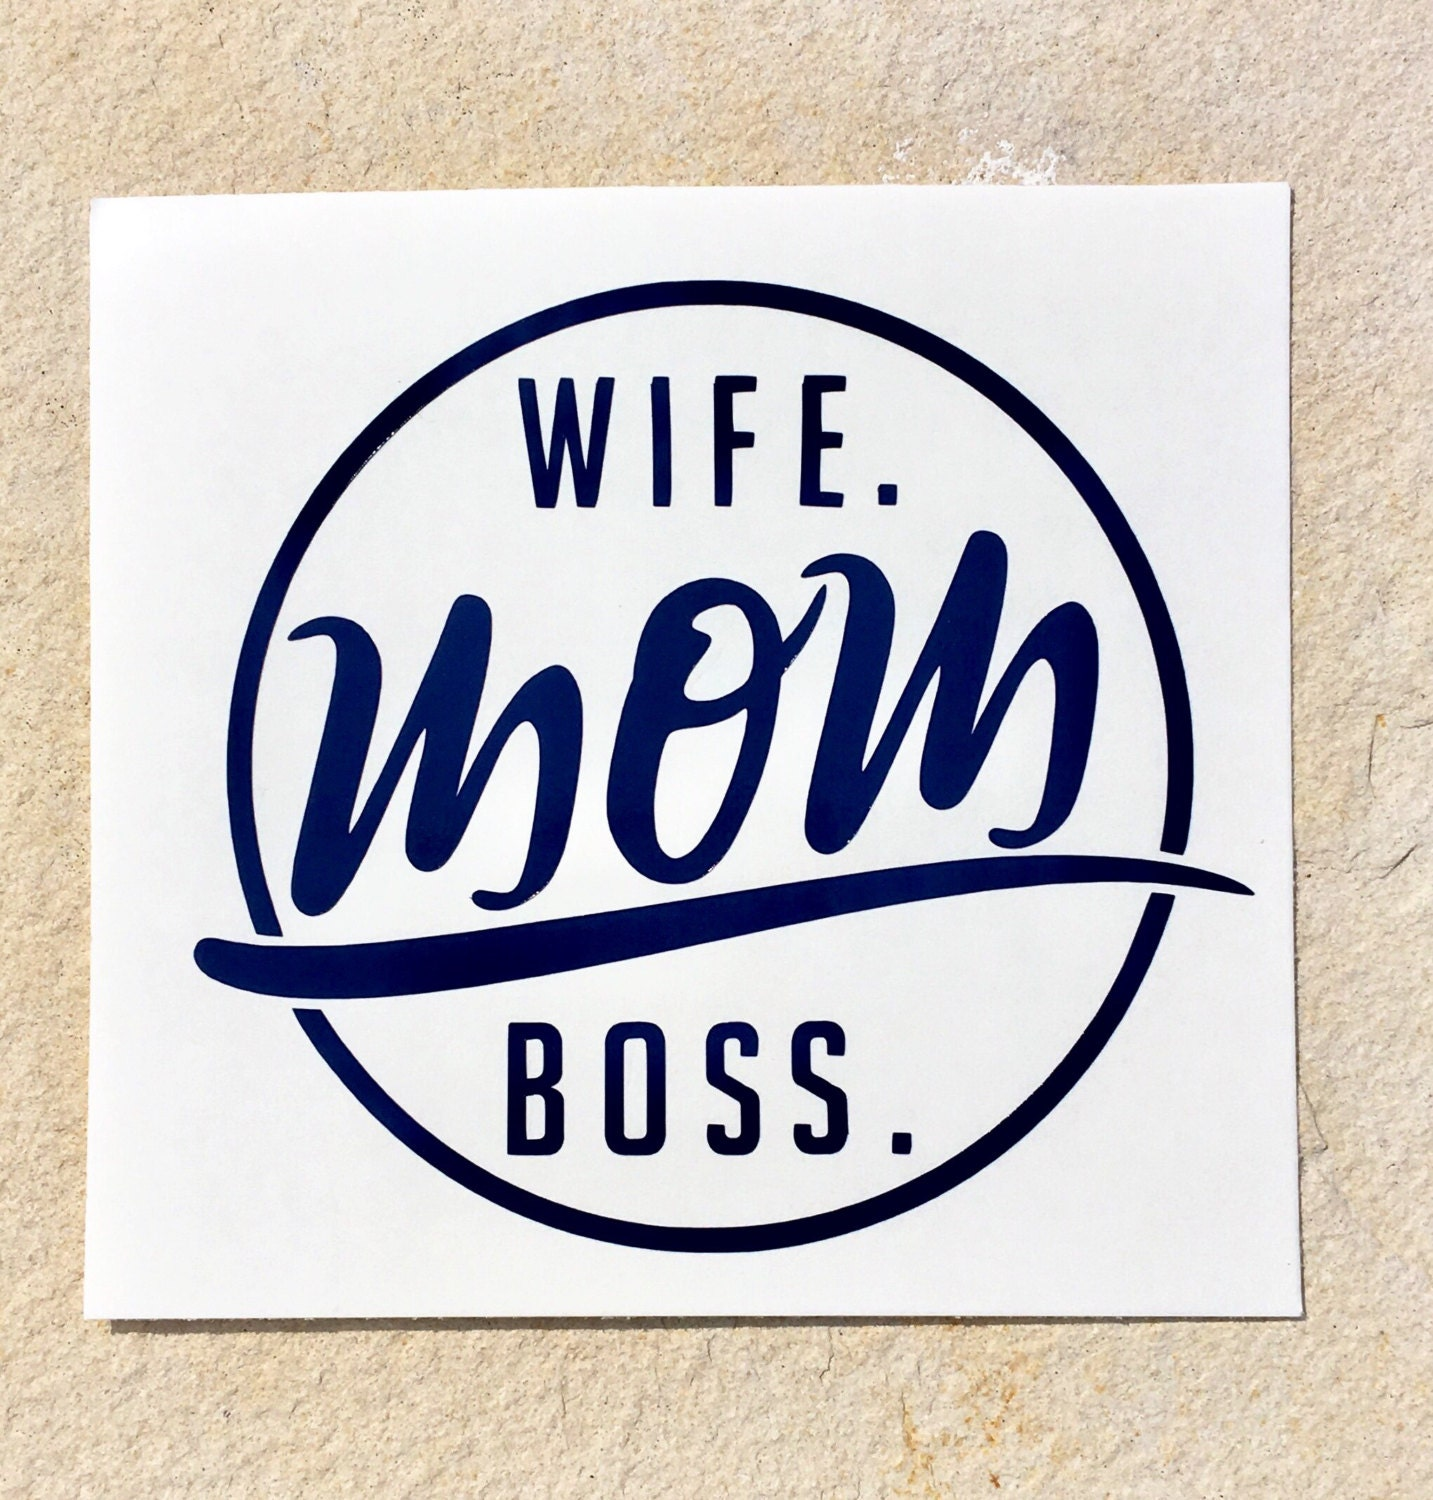 Mom Decal Wifemomboss Decal Boss Decal Wife Sticker Wife. Elementary Decals. Step Repeat Banners. Athena Logo. Horns Signs. Stethoscope Stickers. Gold Color Banners. South Loop Murals. Cath Lab Signs Of Stroke